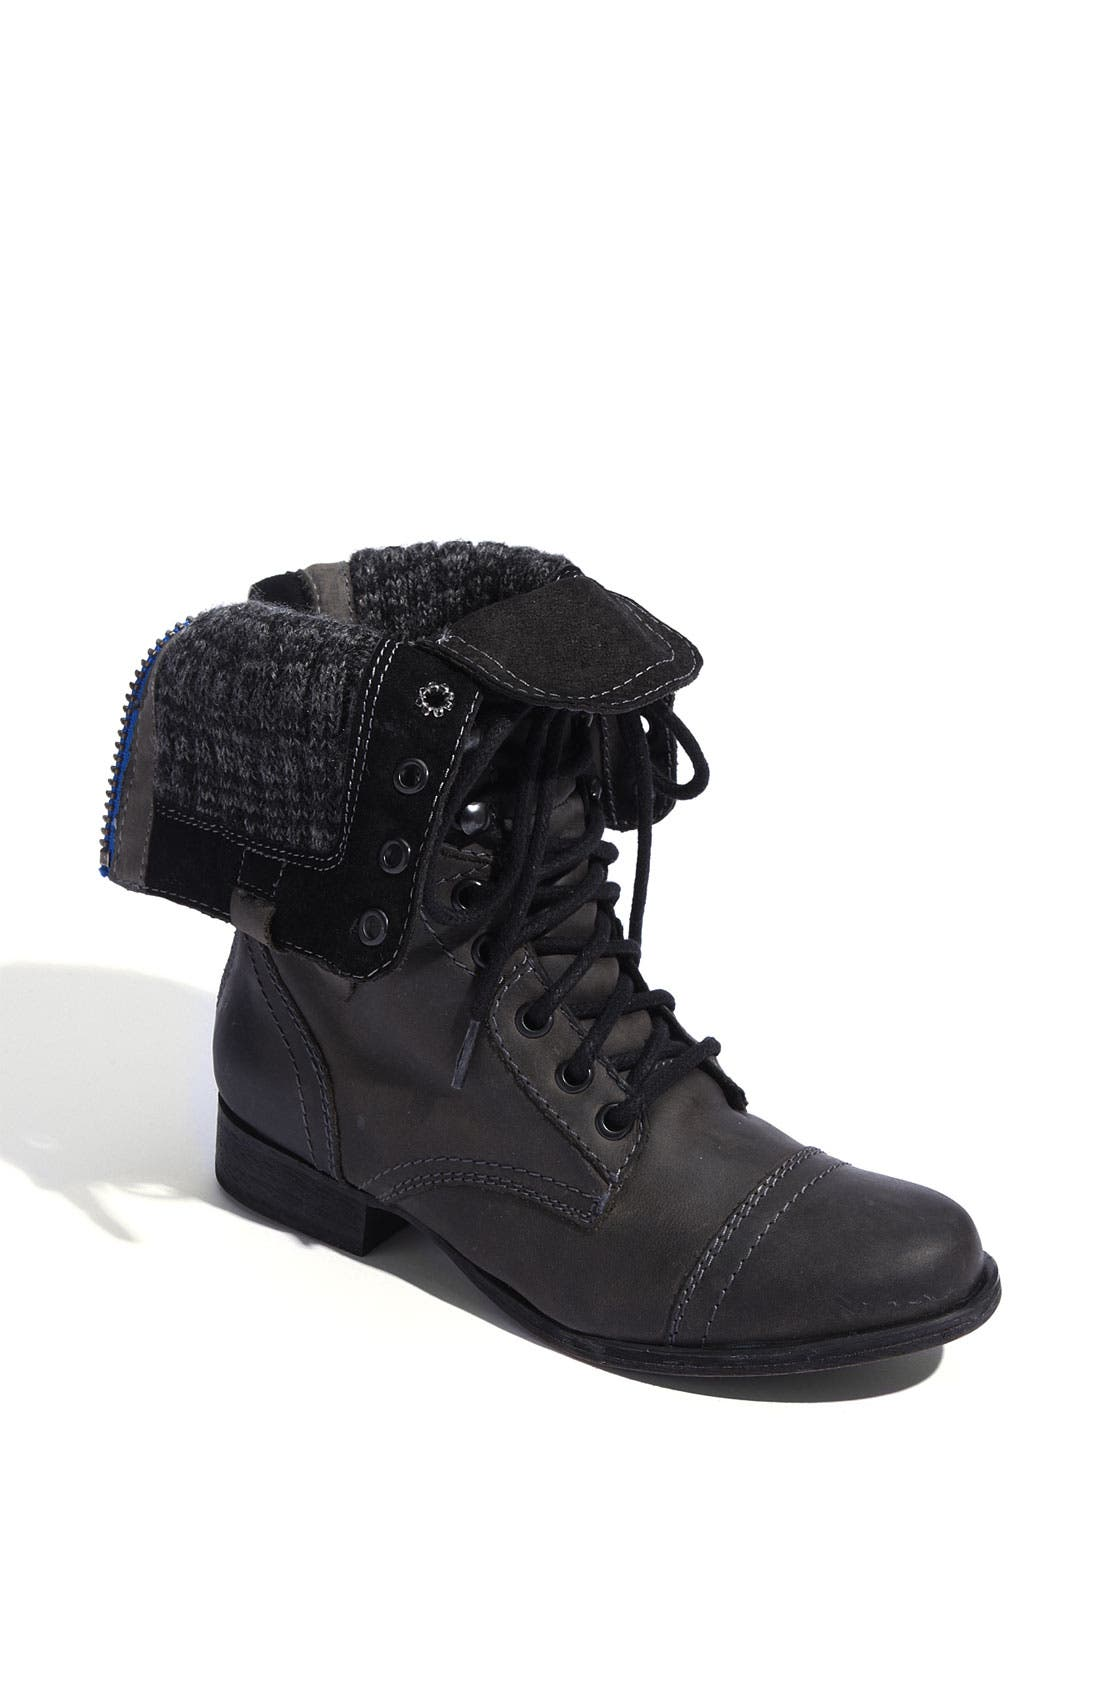 Main Image - Steve Madden 'Cablee' Boot